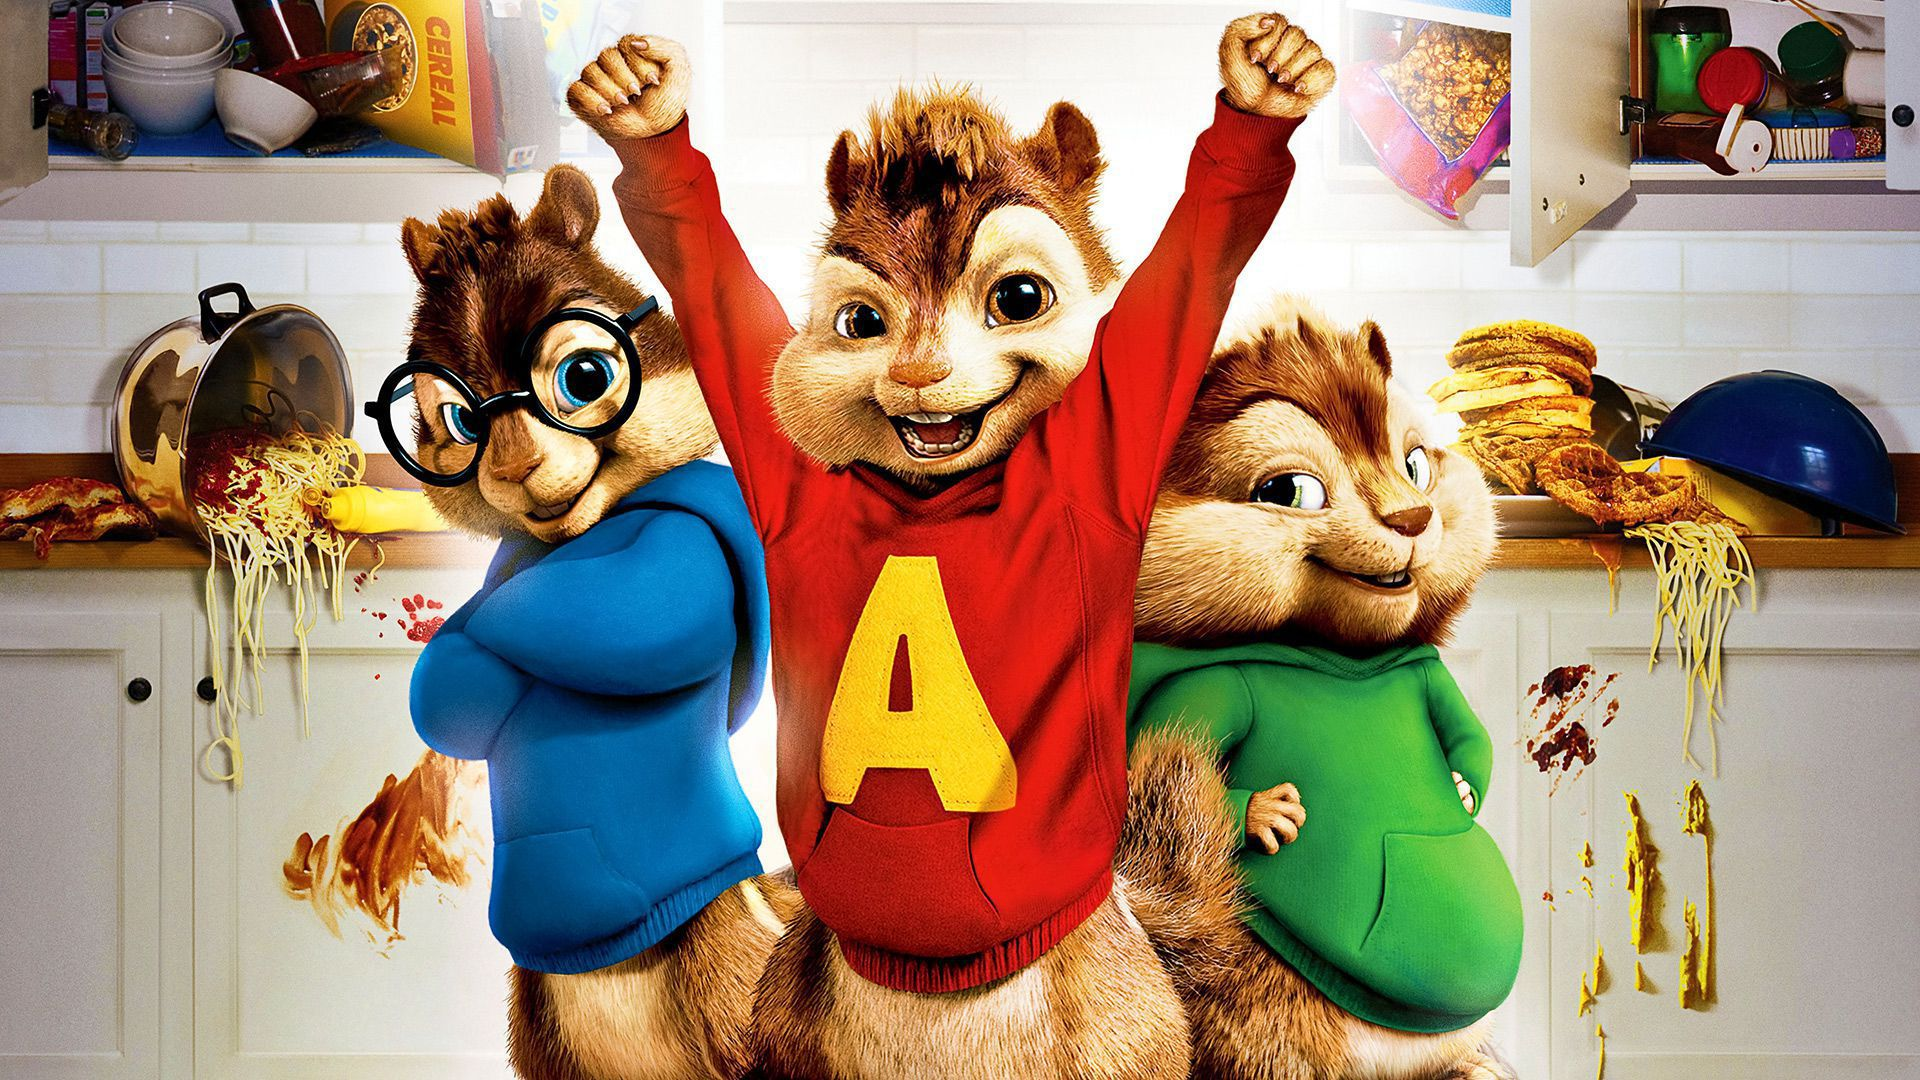 Alvin And The Chipmunks Tumblr